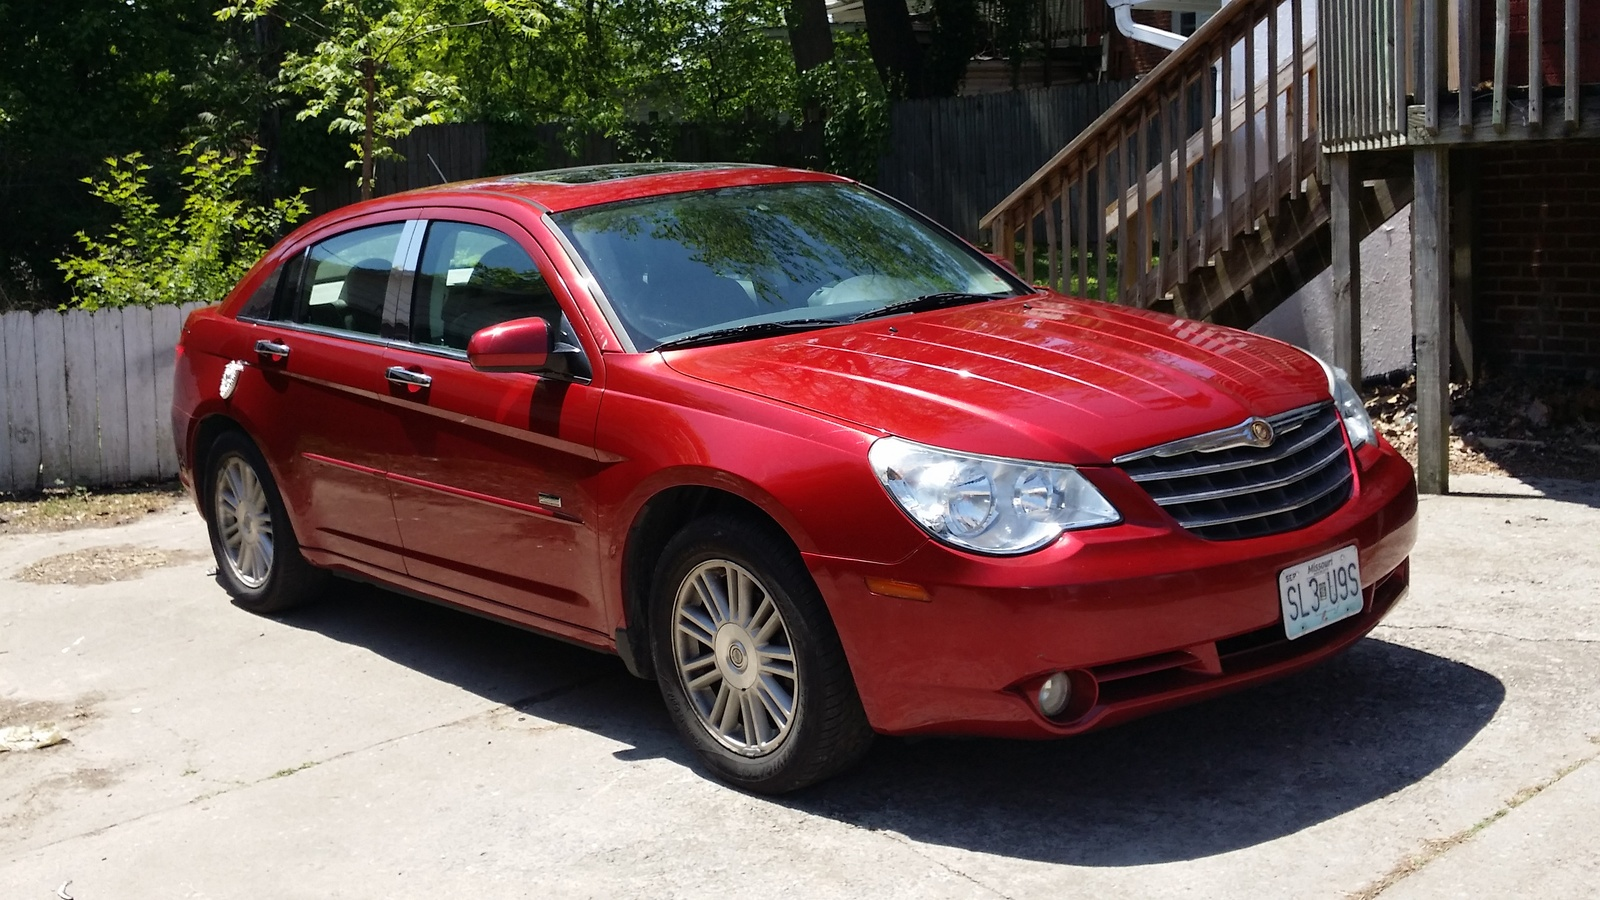 2008 chrysler sebring pictures cargurus. Cars Review. Best American Auto & Cars Review